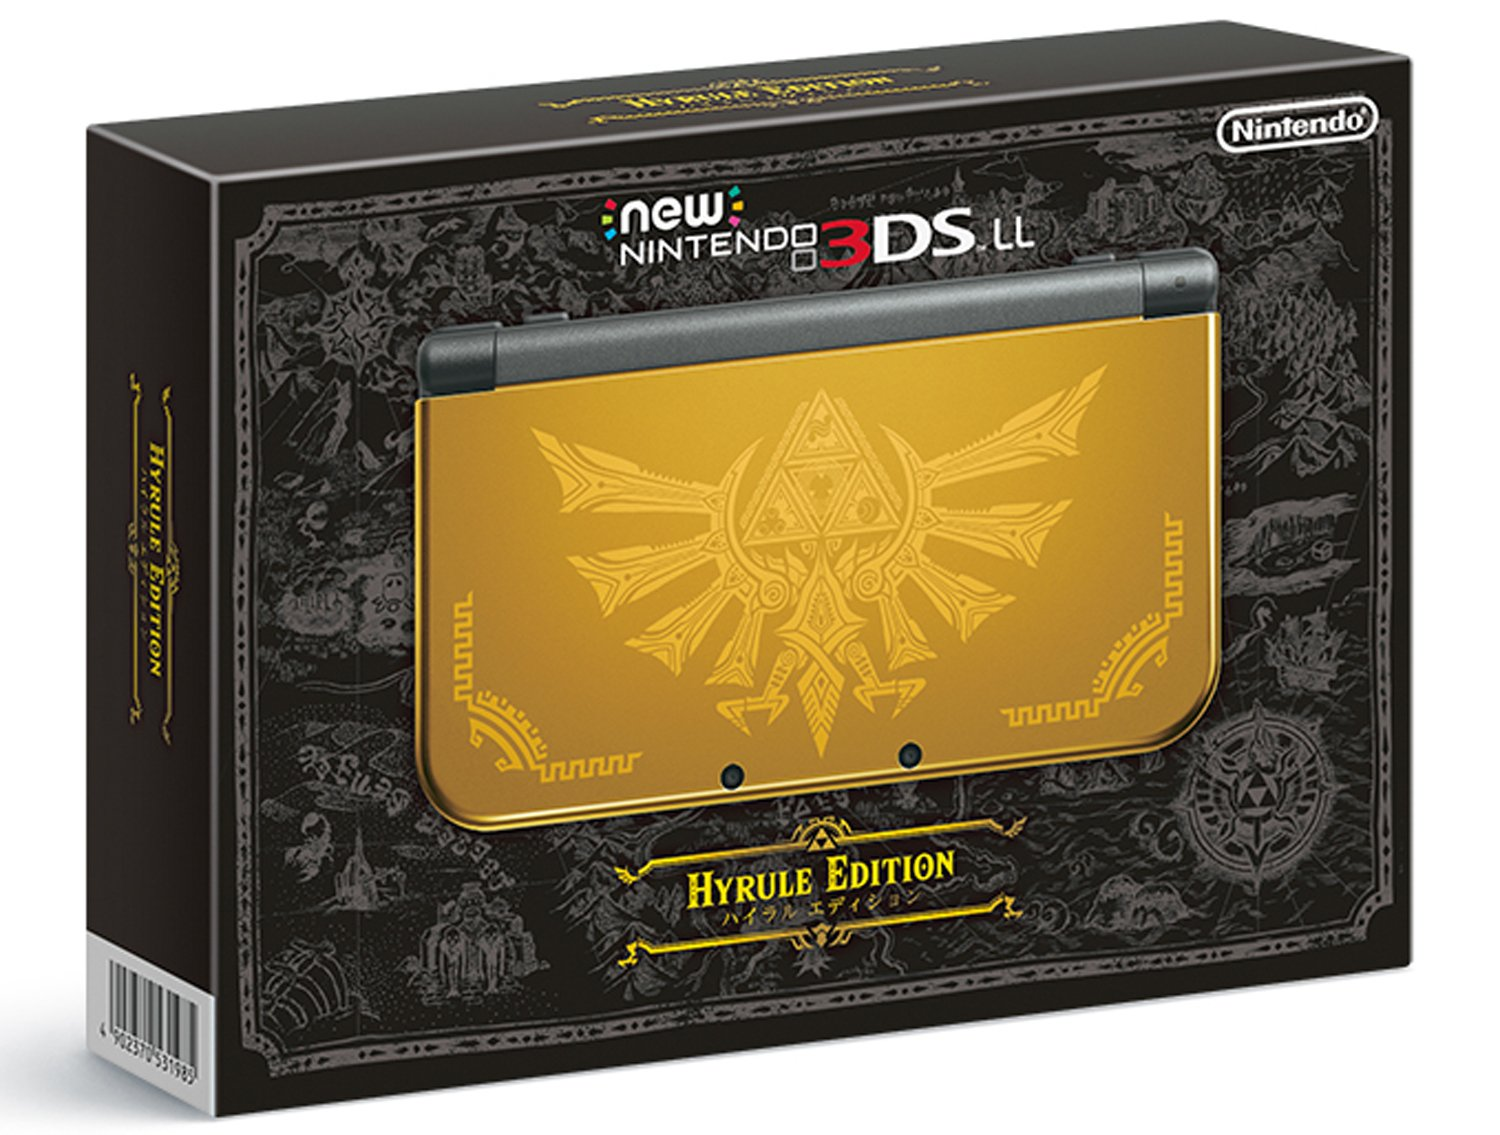 New Nintendo 3DS LL Hailar edition (Japanese Imported Version - only plays Japanese version games) [Japan Import] by 任天堂 (Image #1)